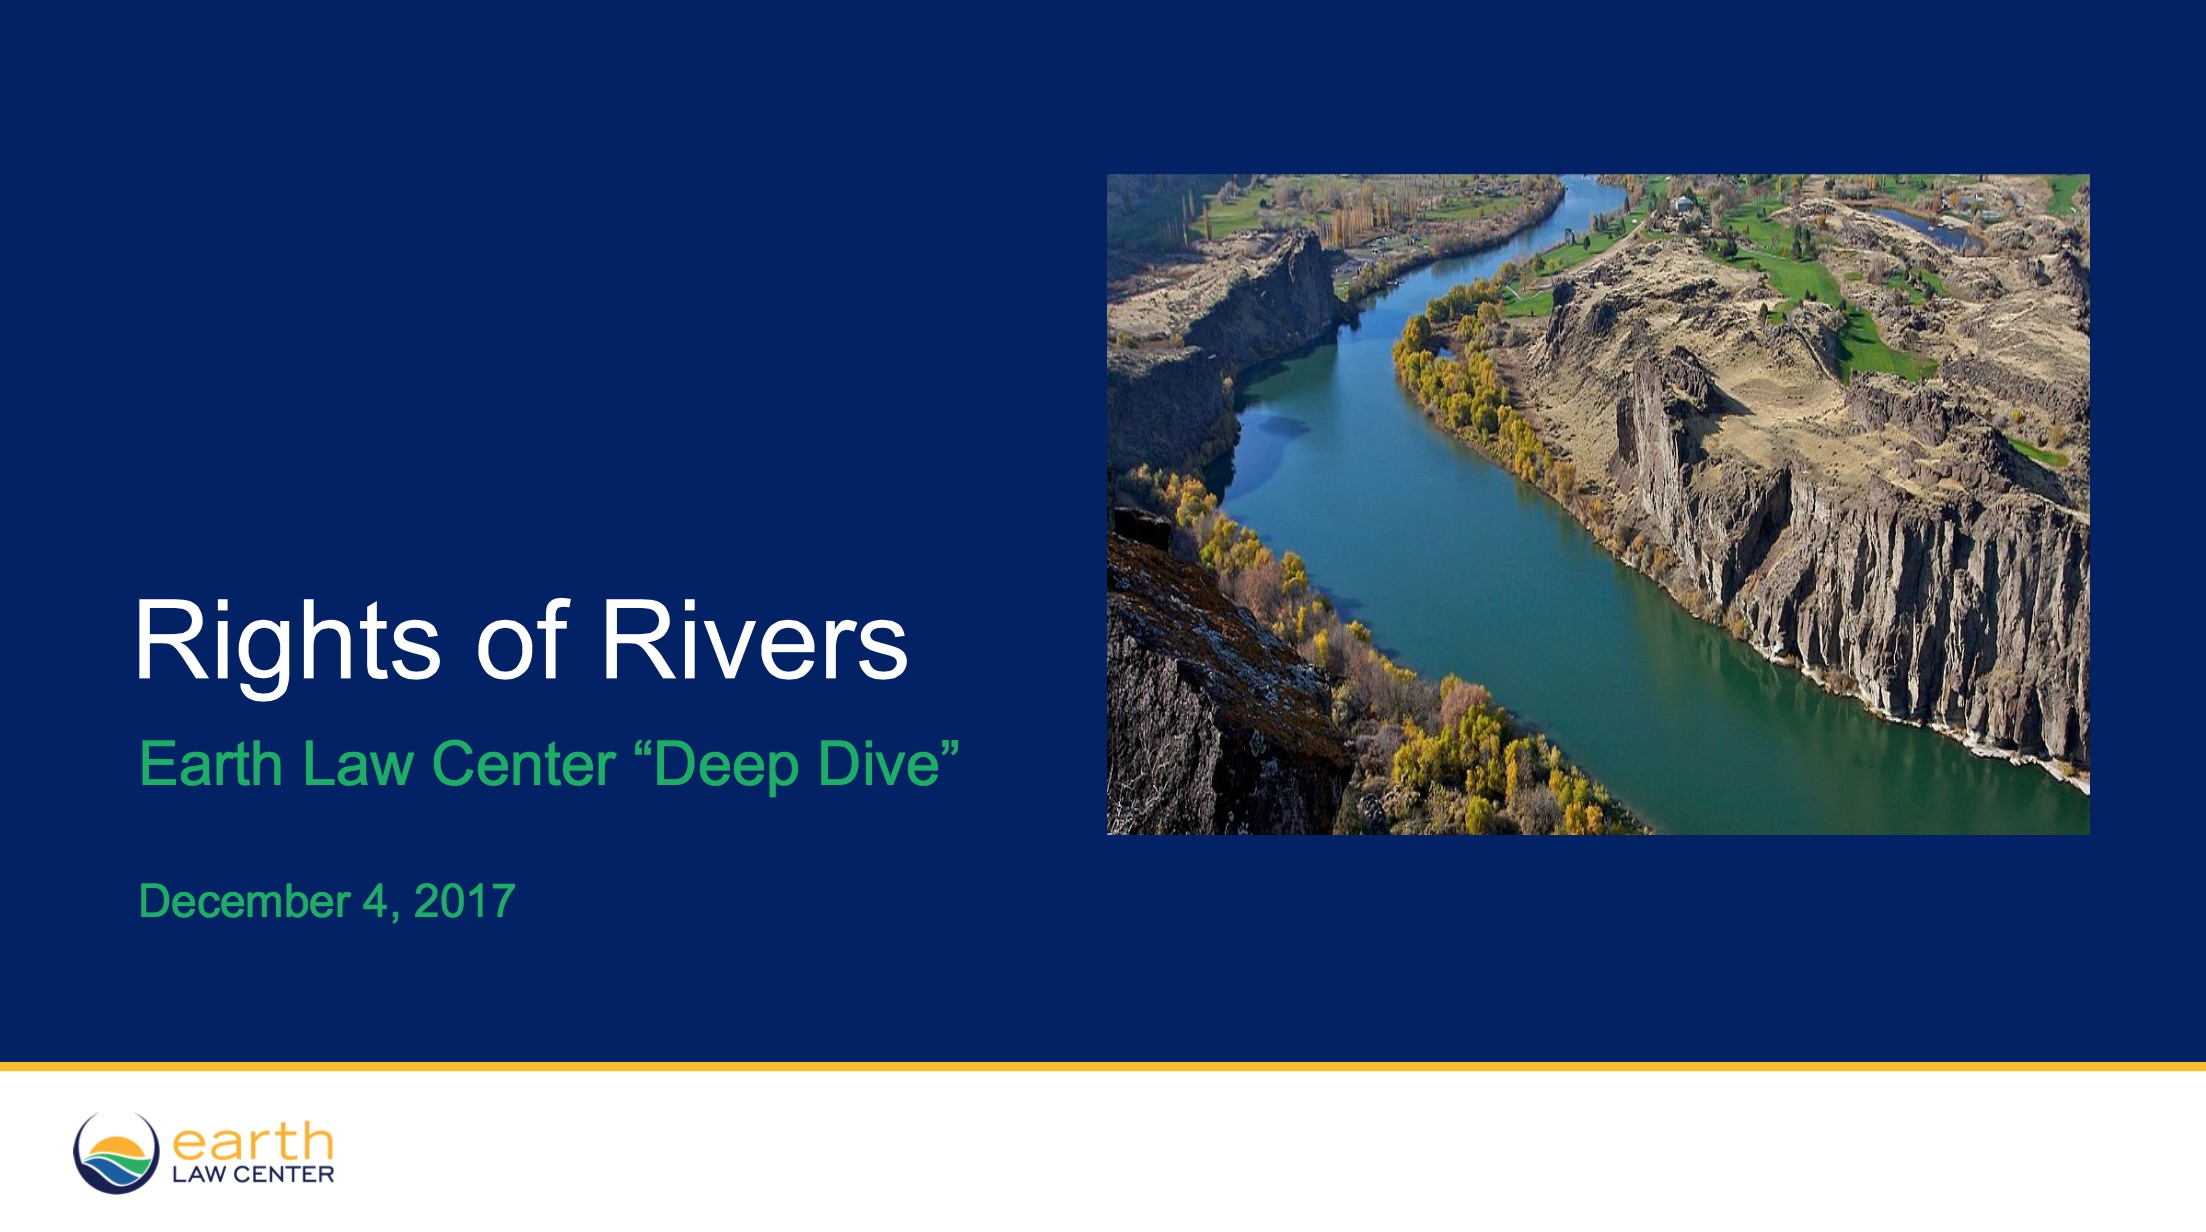 Earth Law Center's presentation on the Rights of Rivers (click to view).